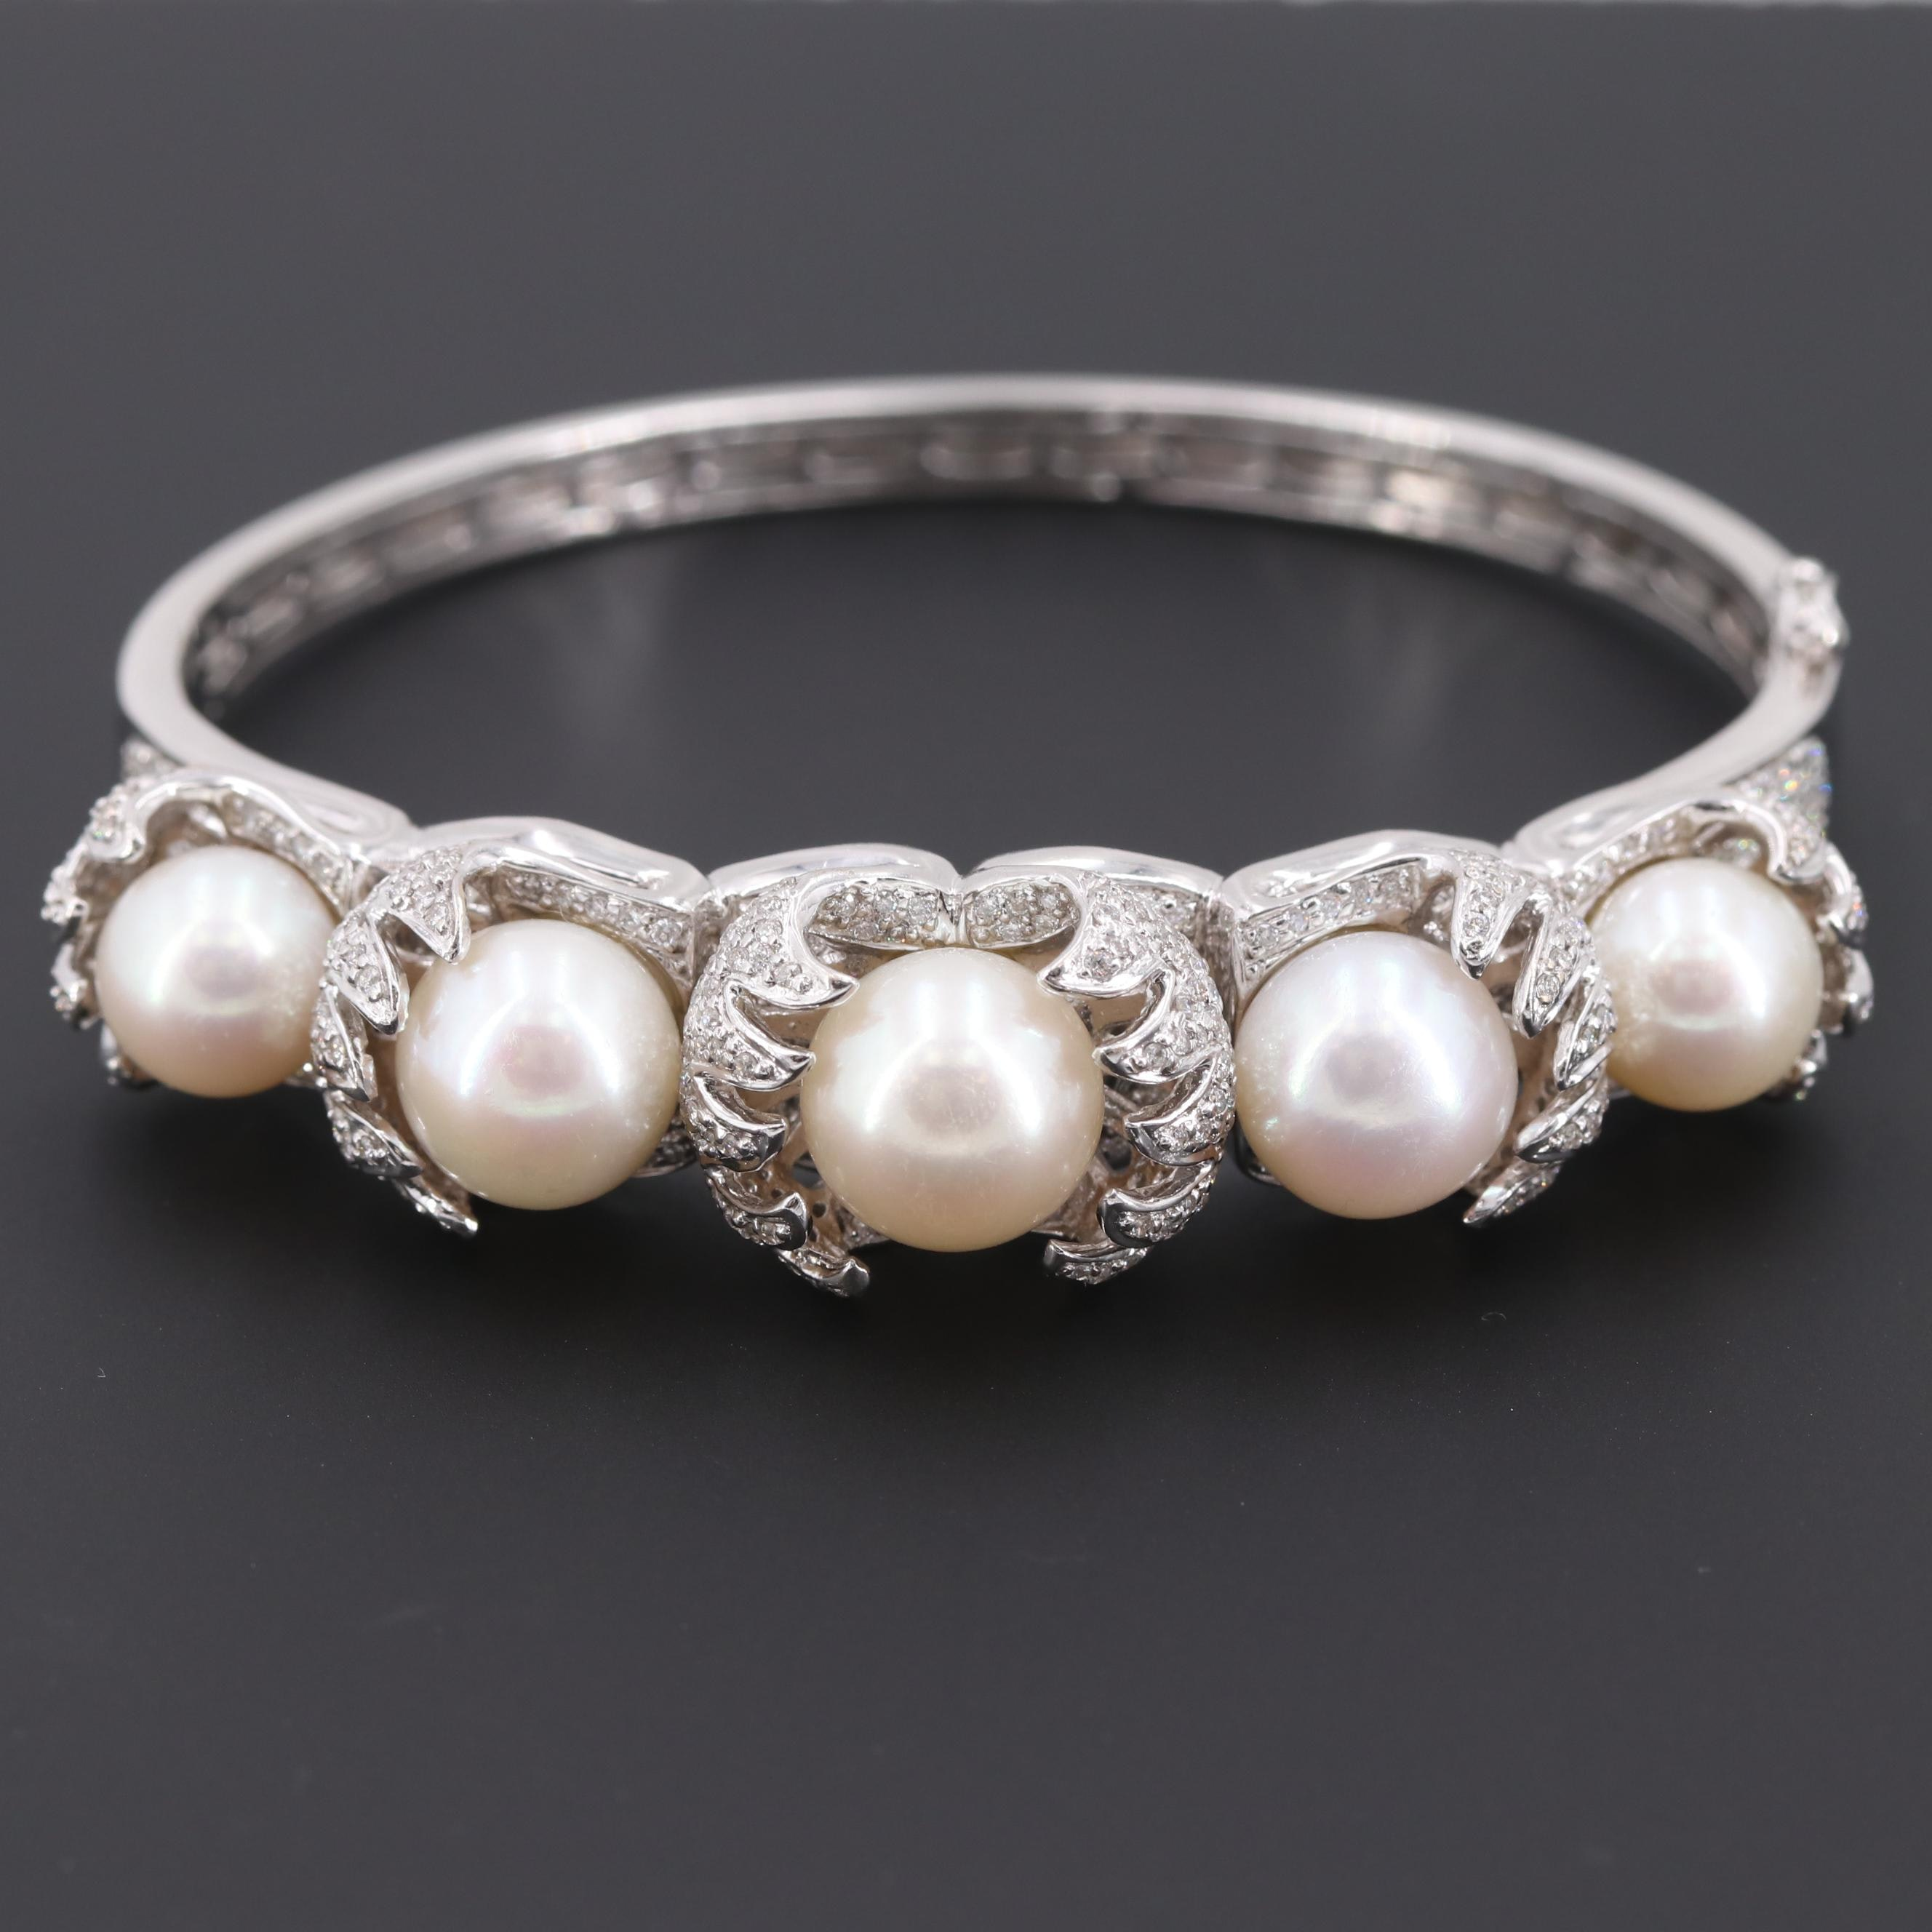 18K White Gold Cultured Pearl and 2.54 CTW Diamond Bracelet